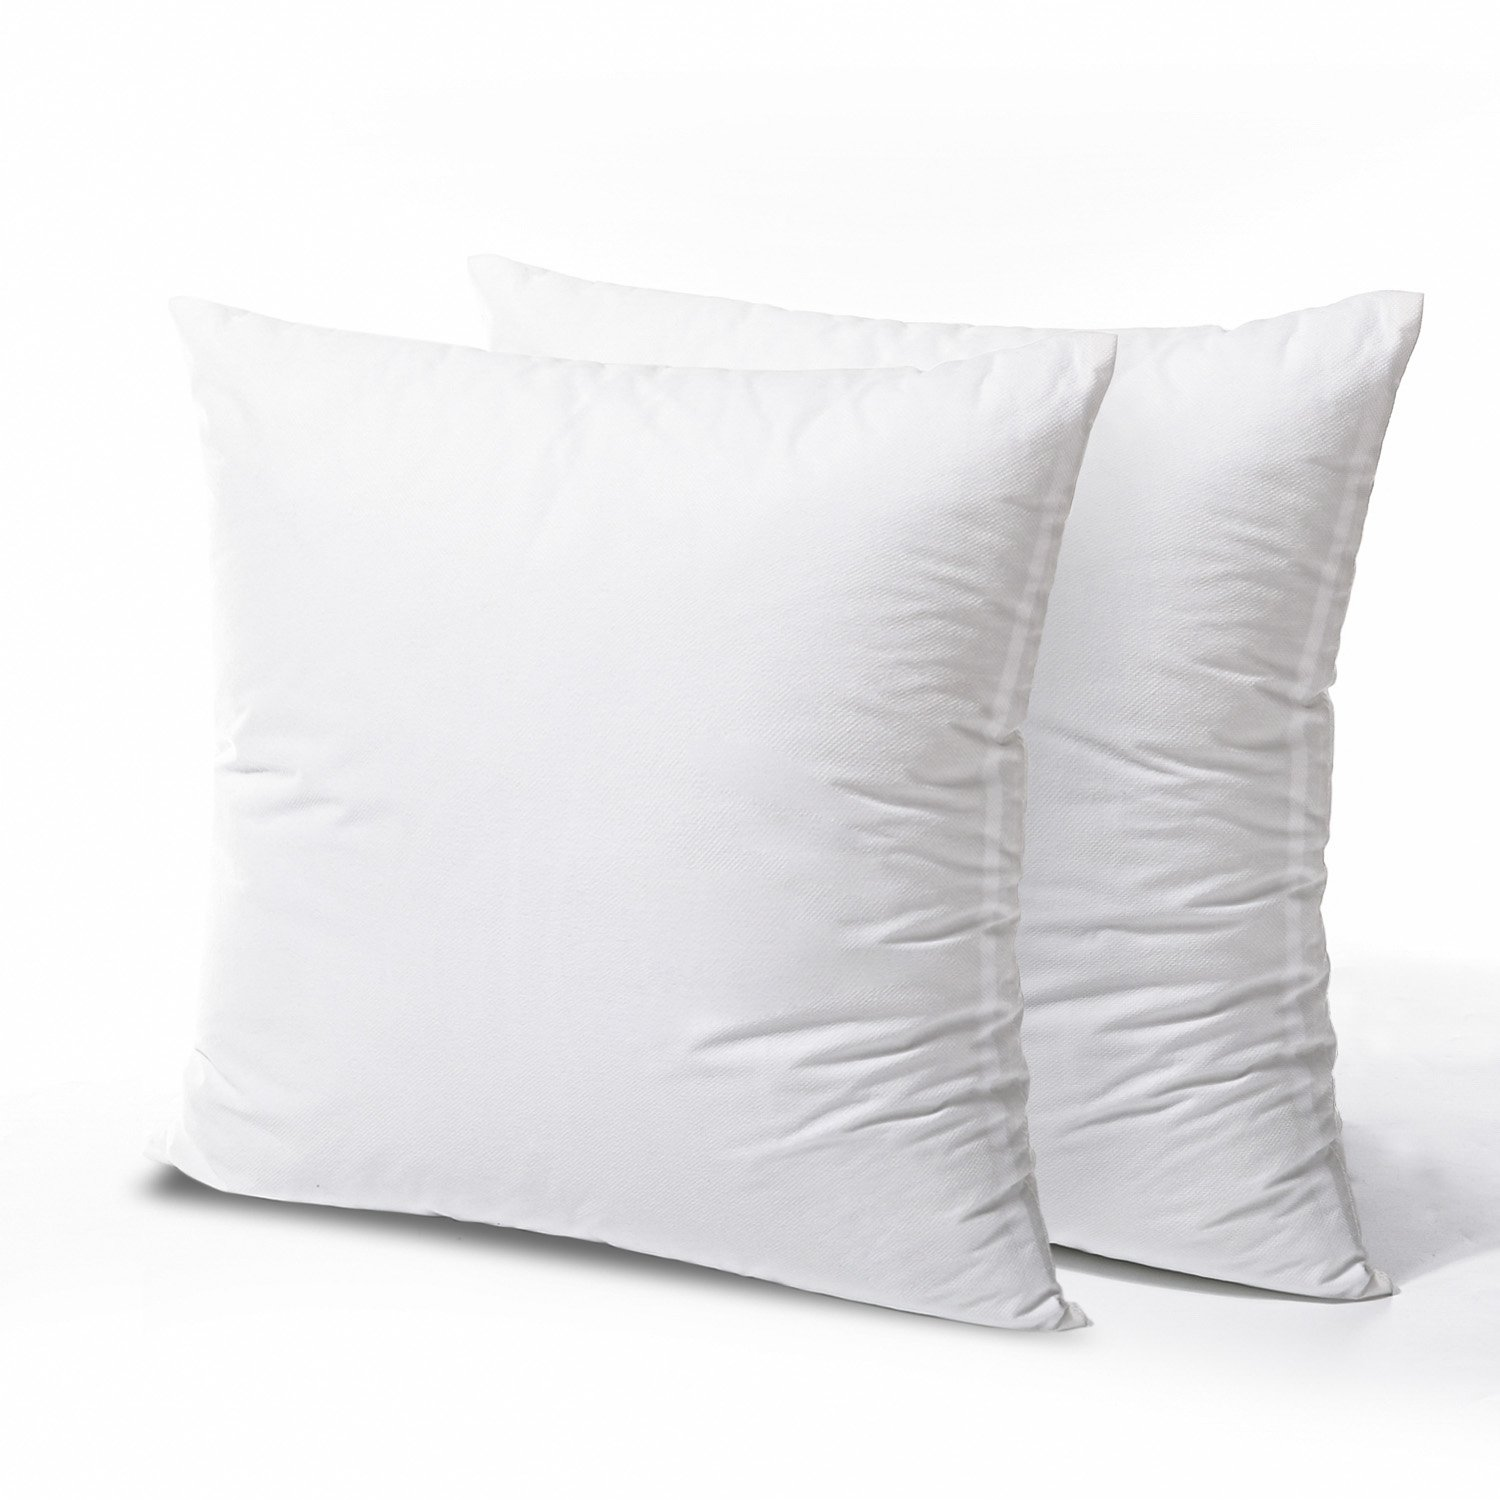 Phantoscope 2 Packs Throw Pillow Inserts Hypoallergenic Square Form Sham Stuffer 16 x 16 inches